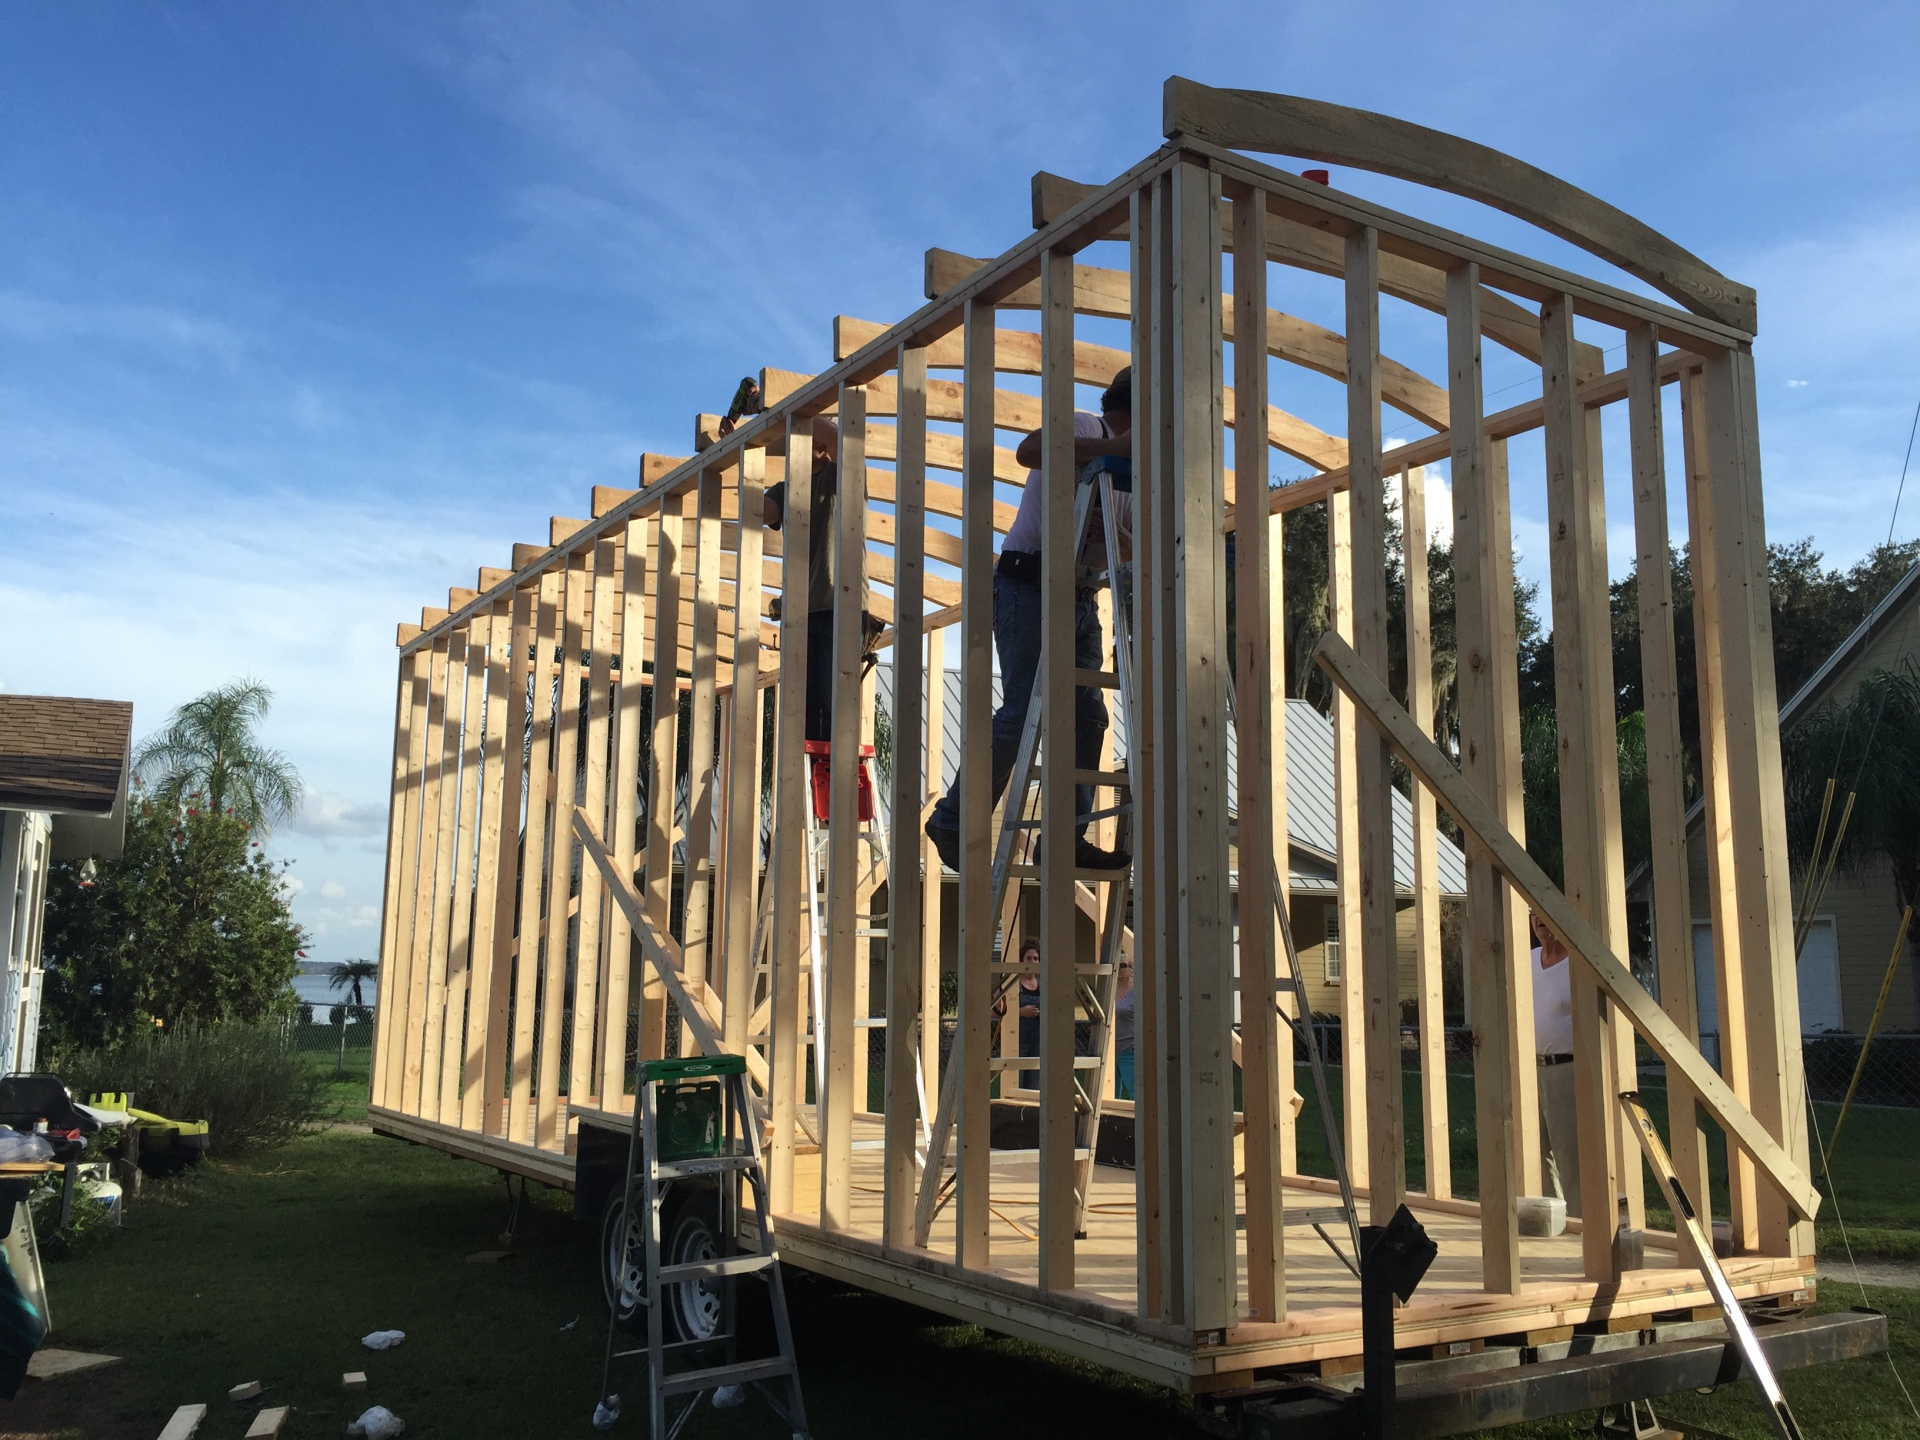 Walls go up - Tiny House